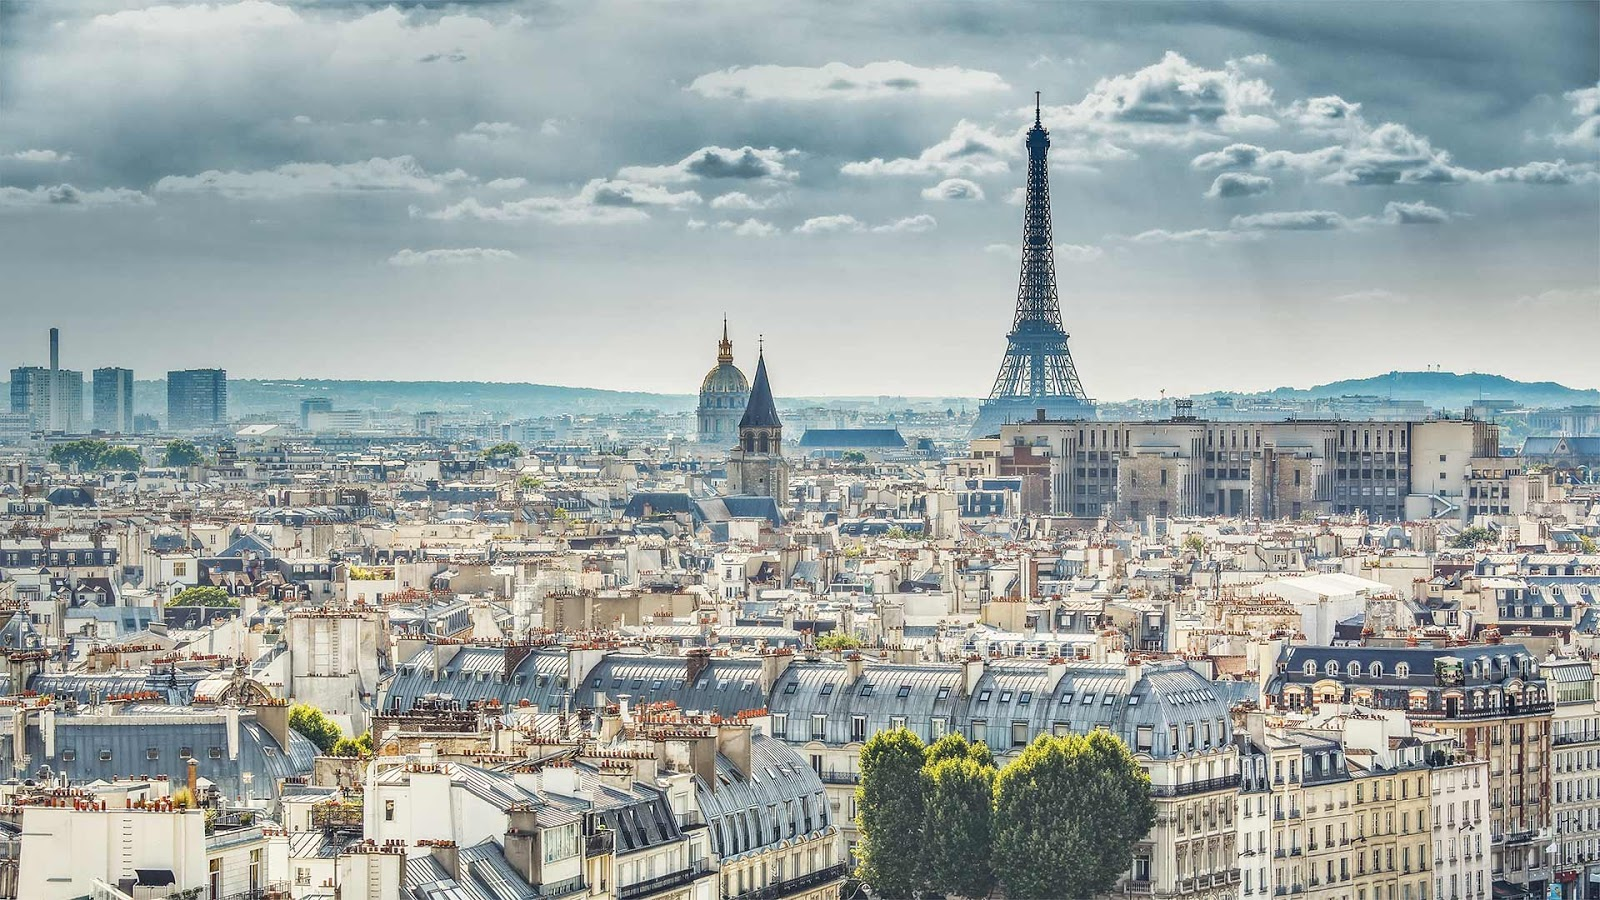 View of Paris, France, with the Eiffel Tower © Funny Solution Studio/Shutterstock